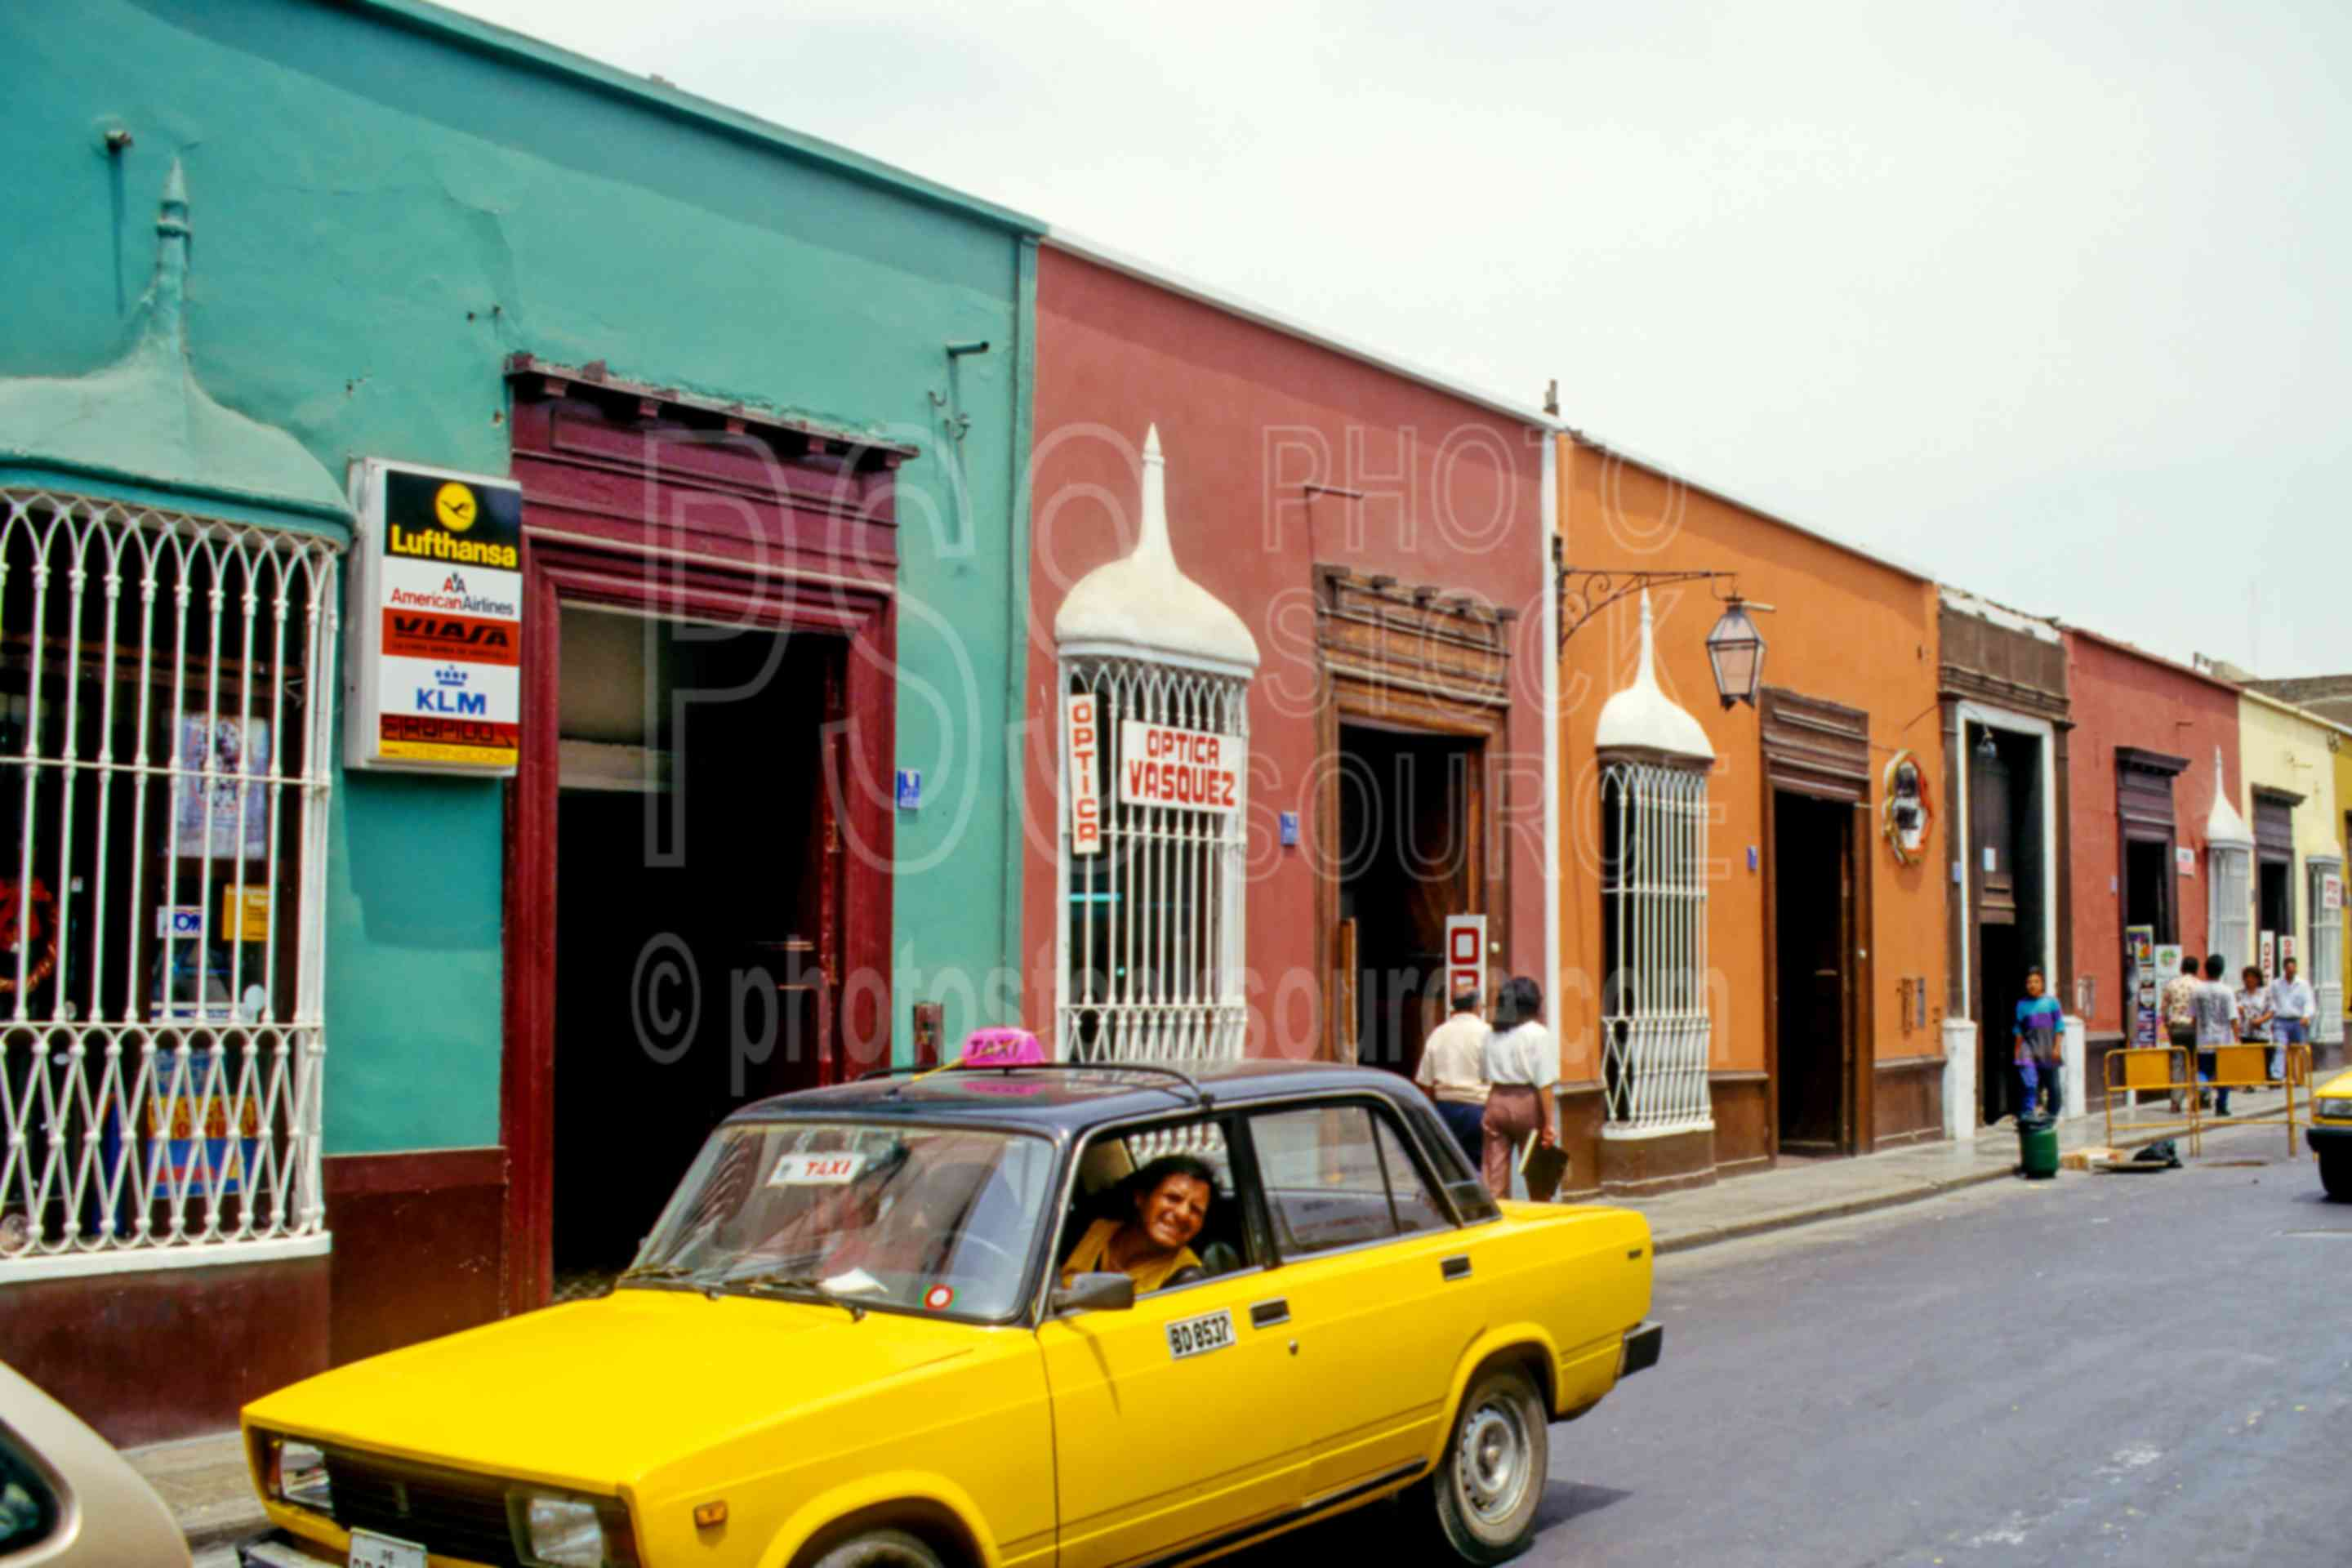 Taxi and Colorful Buildings,cars,street,taxi,automobile,automobiles